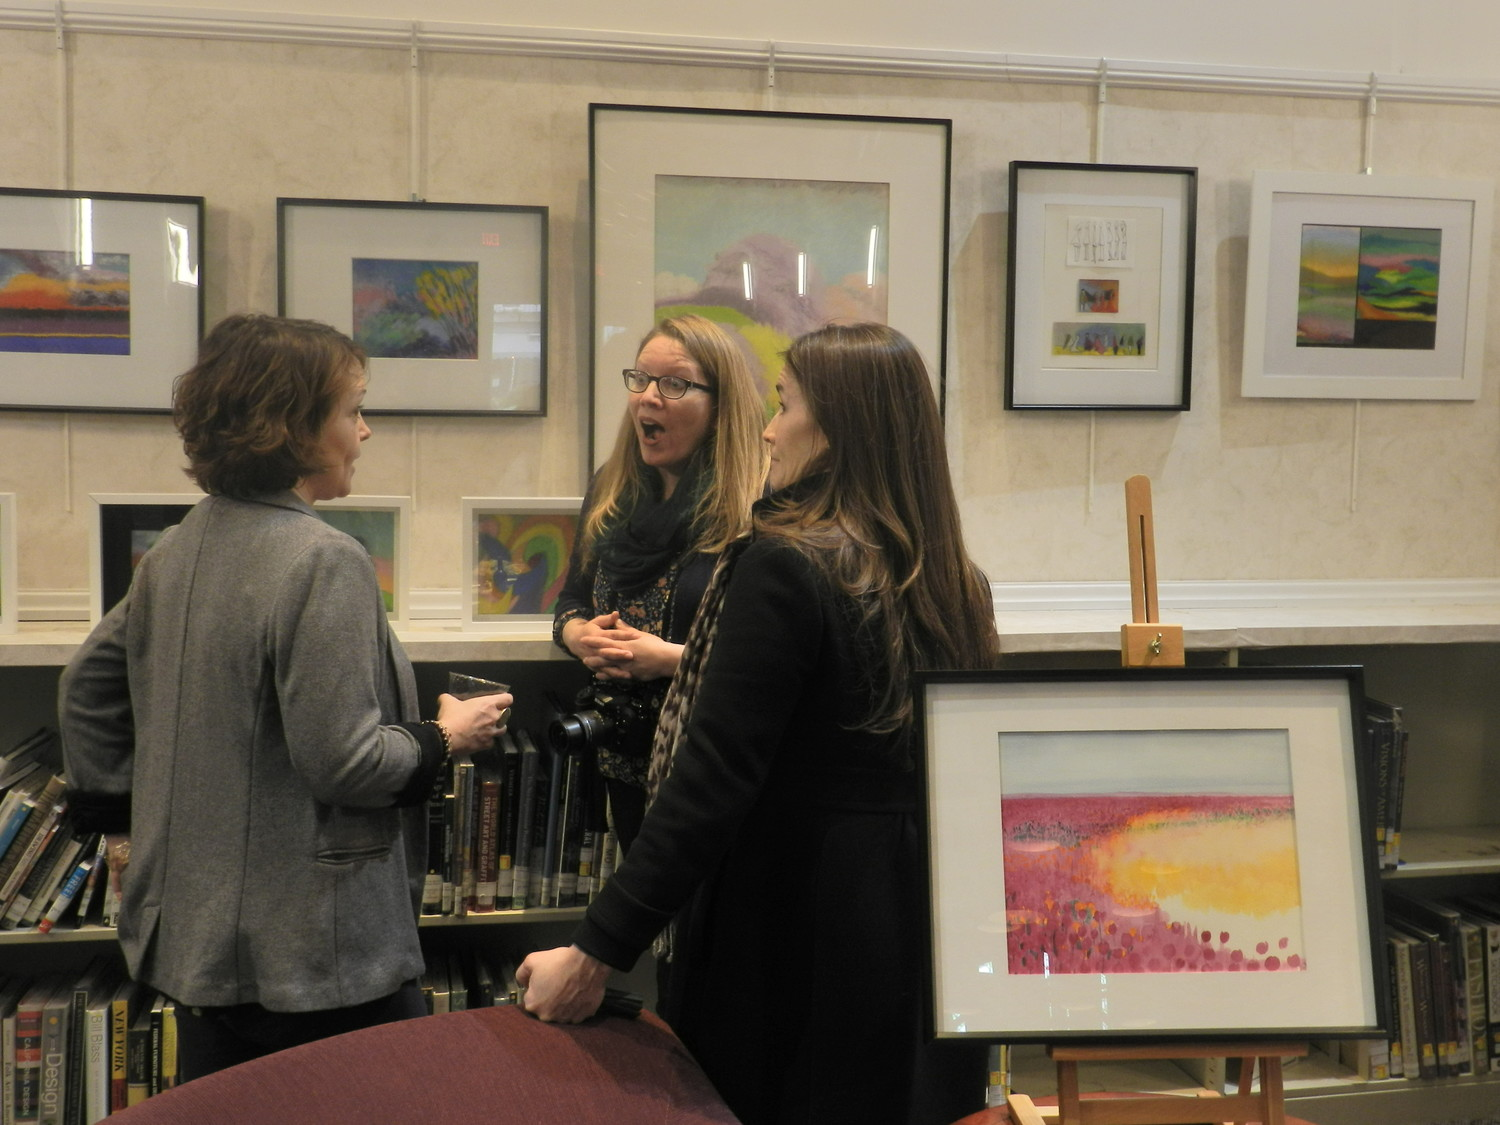 Sea Cliff Arts Council Co-chairwomen Kat DiResta, left, and Heidi Hunt, enjoyed the exhibit at the Sea Cliff Library with Miranda Best.